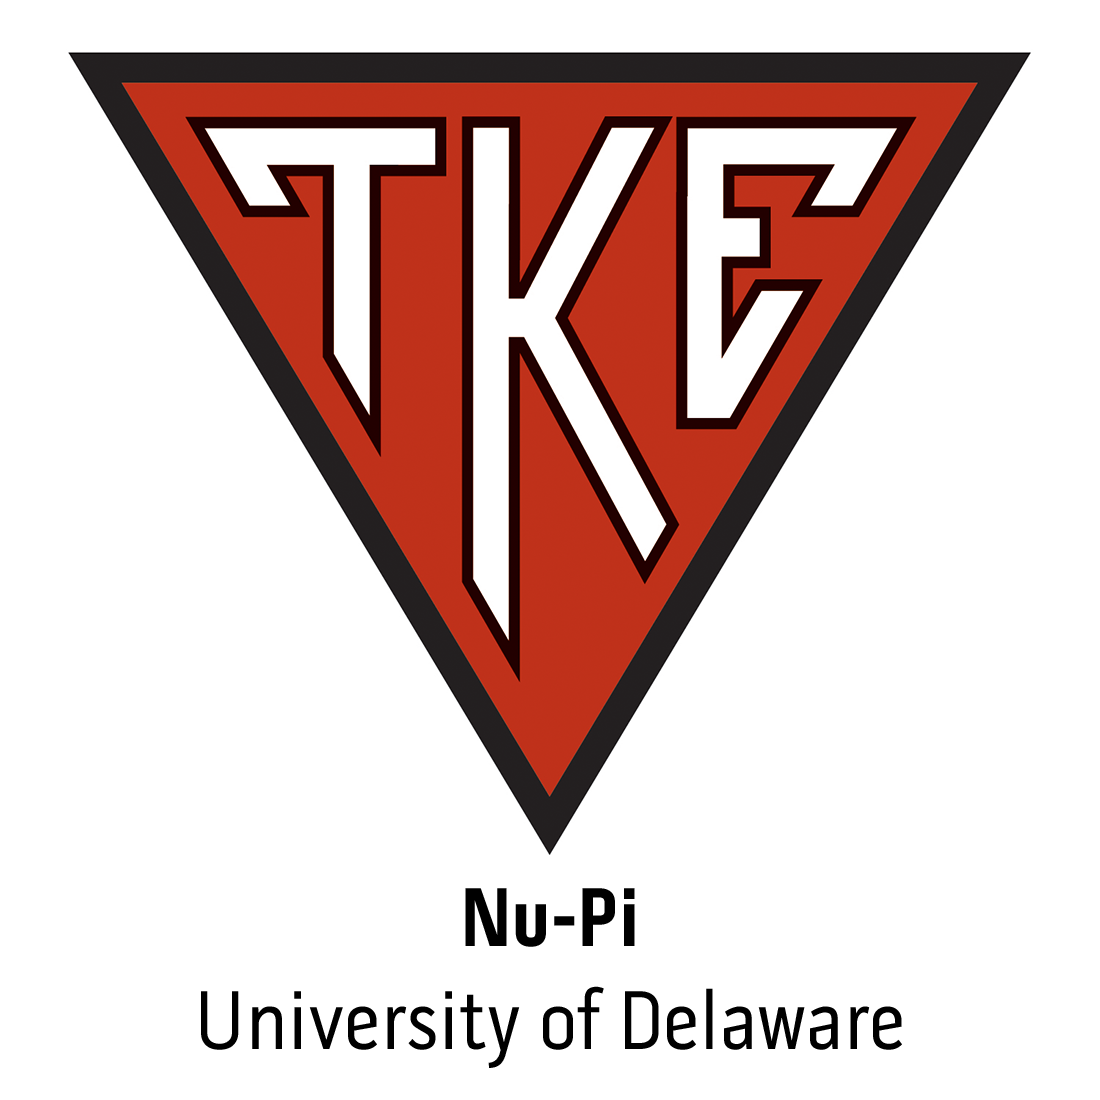 Nu-Pi Colony at University of Delaware